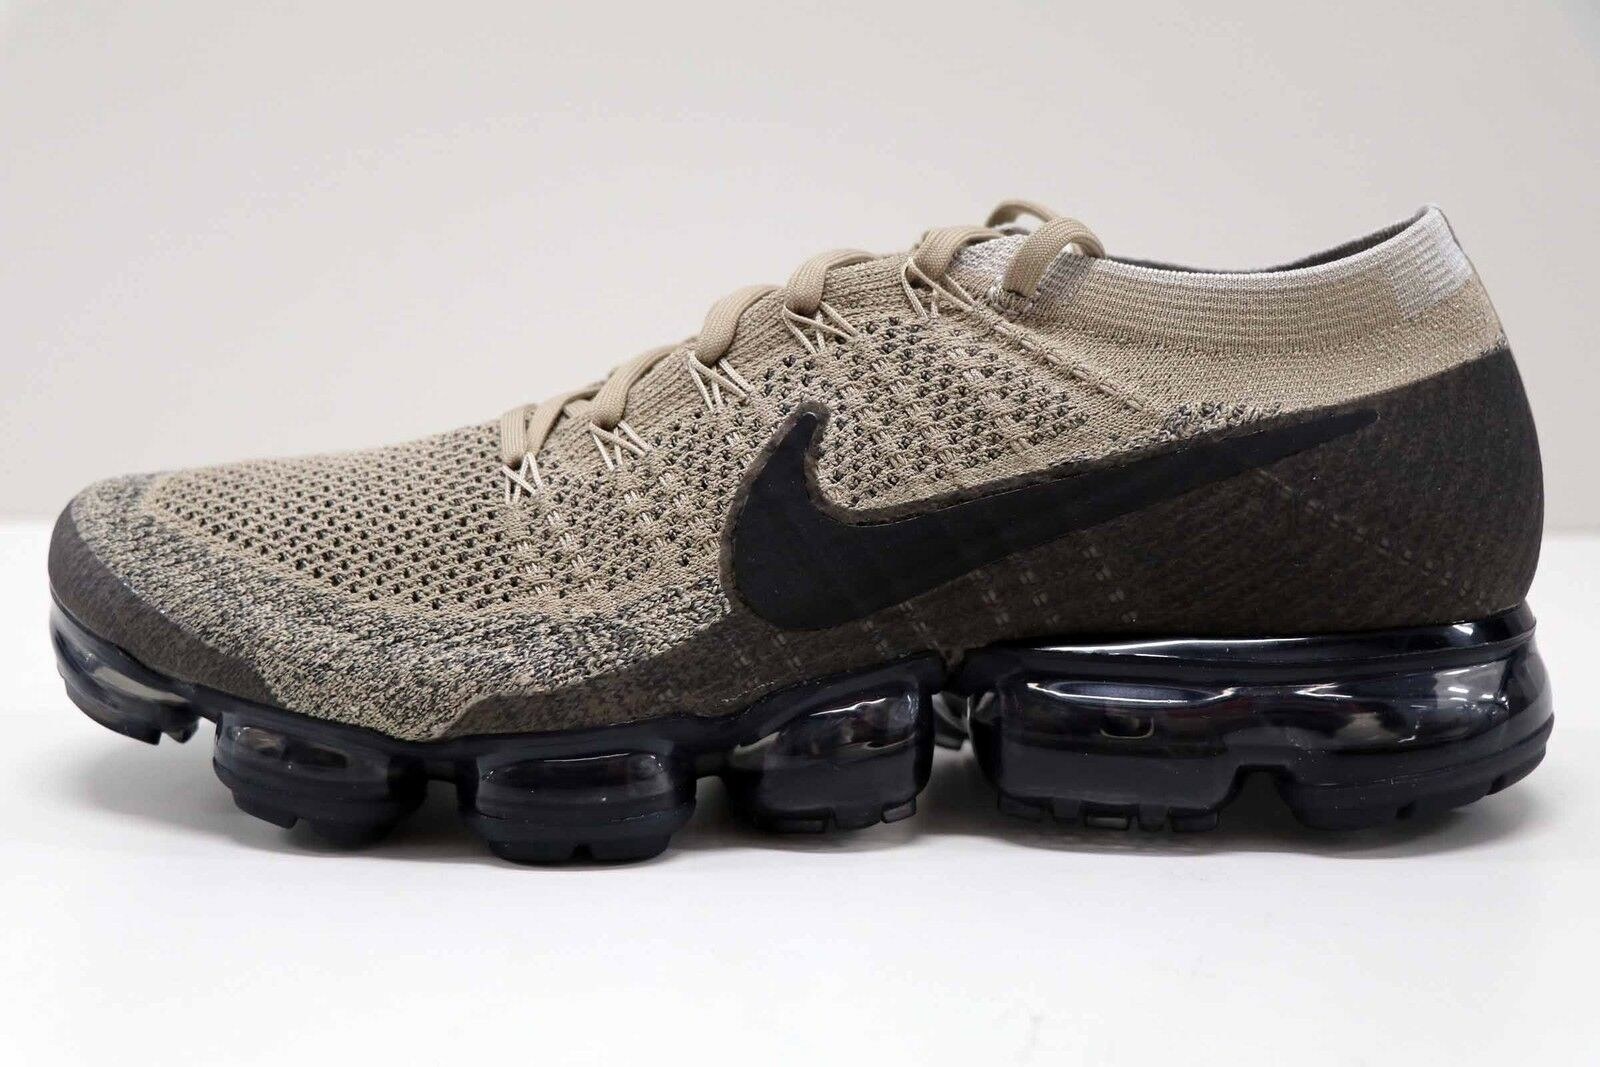 36a044b1a4468 ... Nike Air Vapormax Flyknit Pudding Khaki Black 849558 201 201 849558  Size 13 New in Box . ...